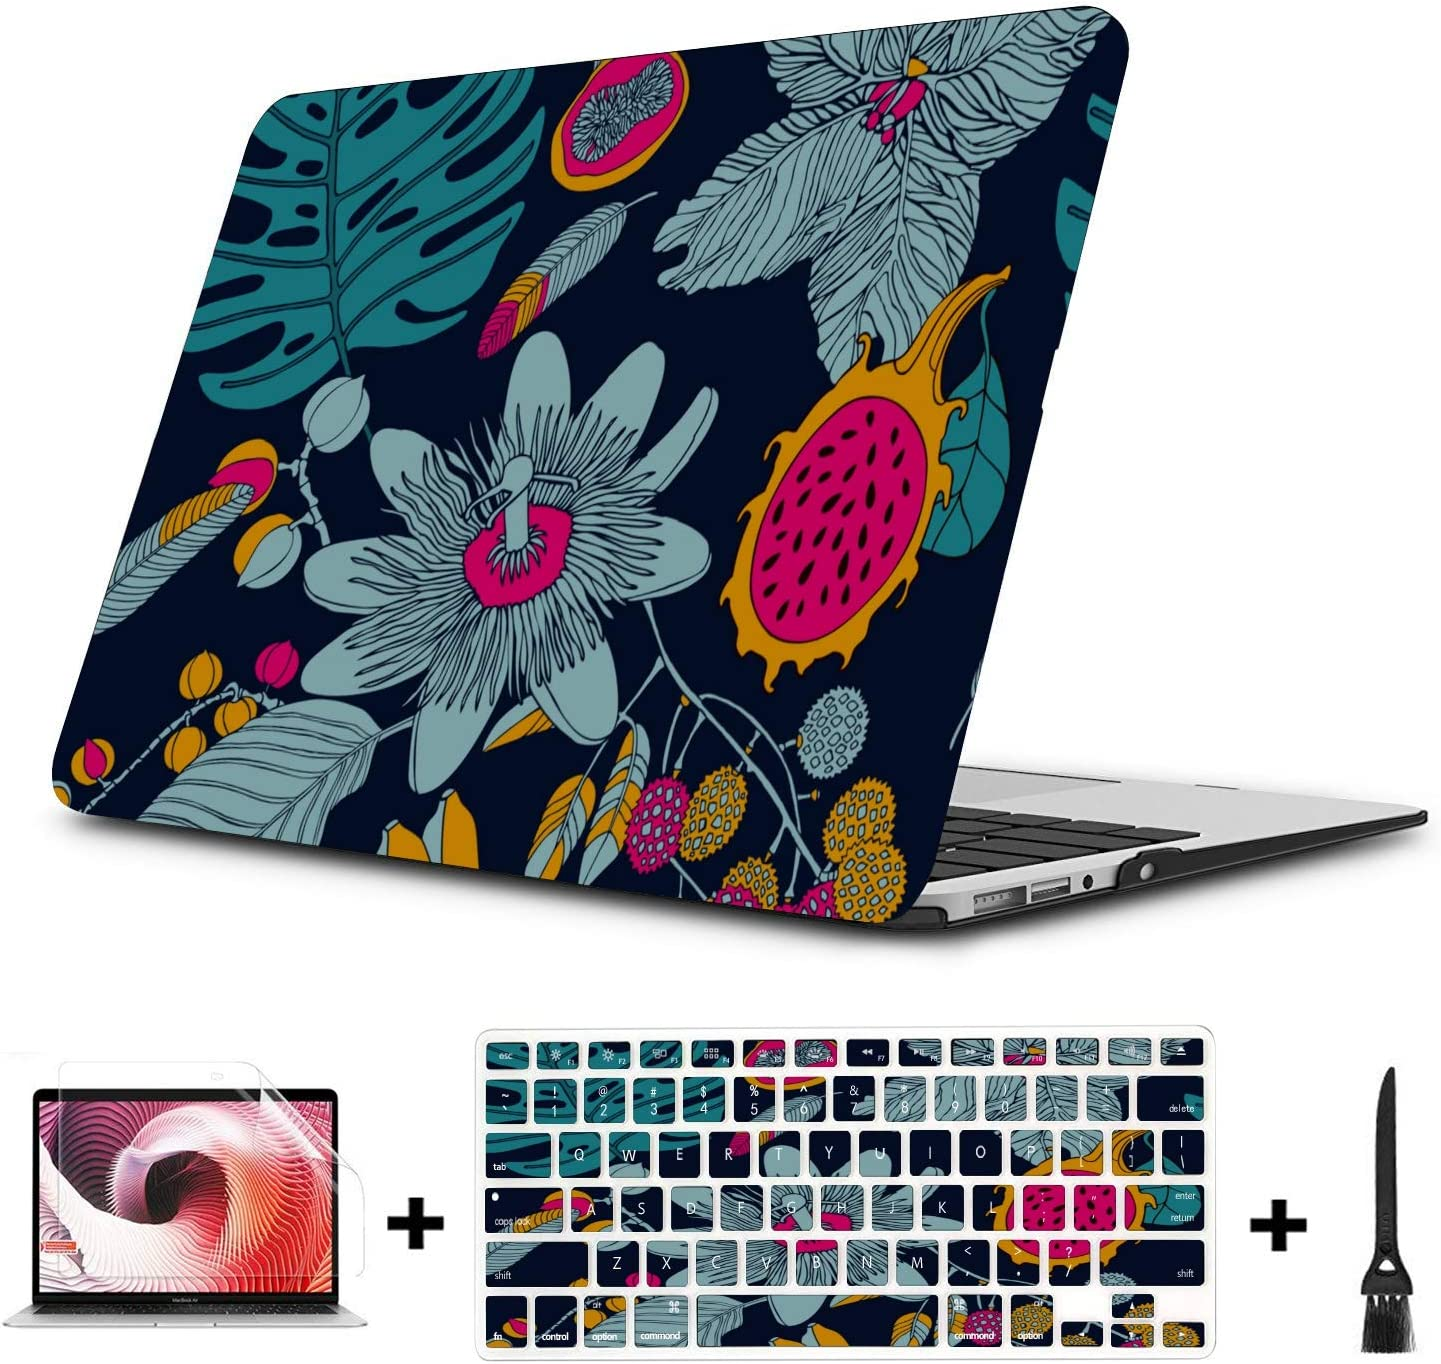 MacBook Pro 2017 Accessories Summer Fashion Fruit Dragon Love Plastic Hard Shell Compatible Mac Air 11 Pro 13 15 MacBook Air Protective Case Protection for MacBook 2016-2019 Version